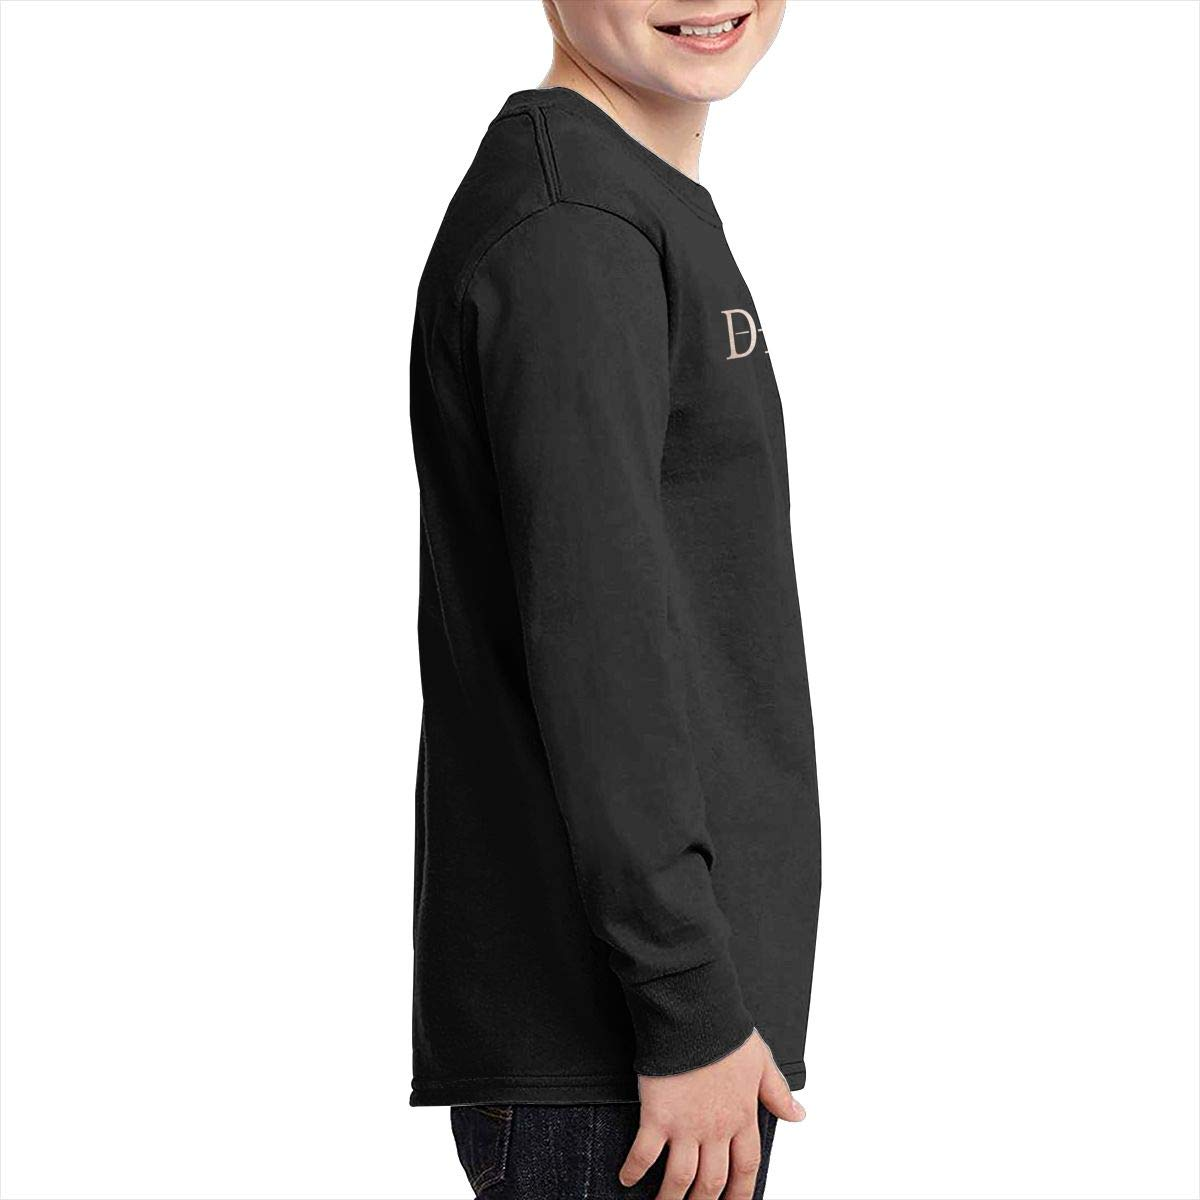 MichaelHazzard Delain Logo Youth Comfortable Long Sleeve Crewneck Tee T-Shirt for Boys and Girls